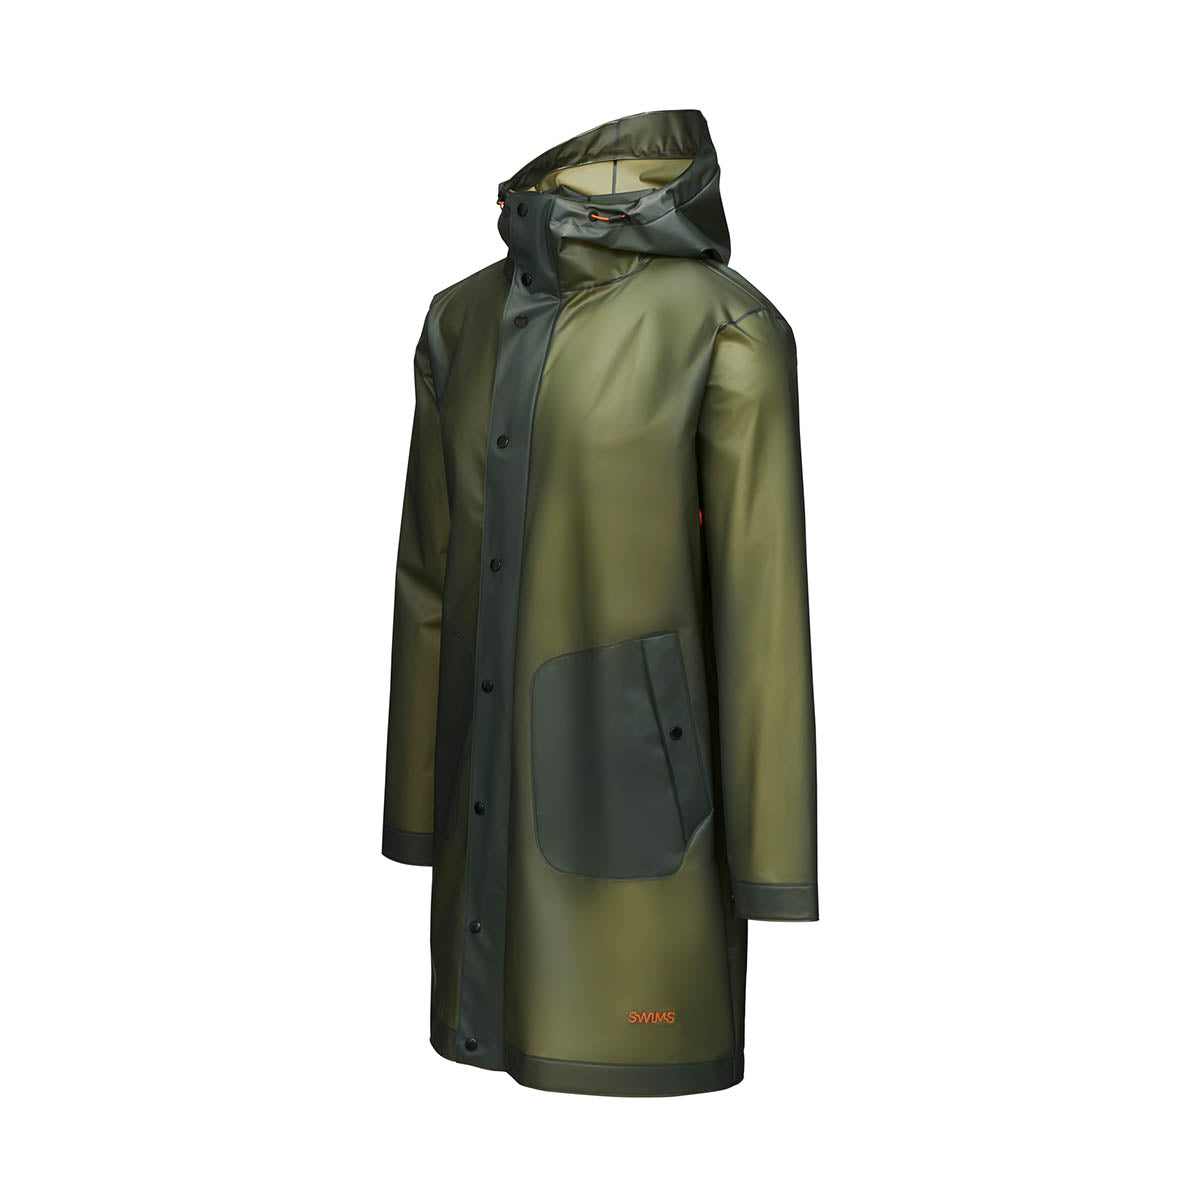 Basel Raincoat - background::white,variant::Olive